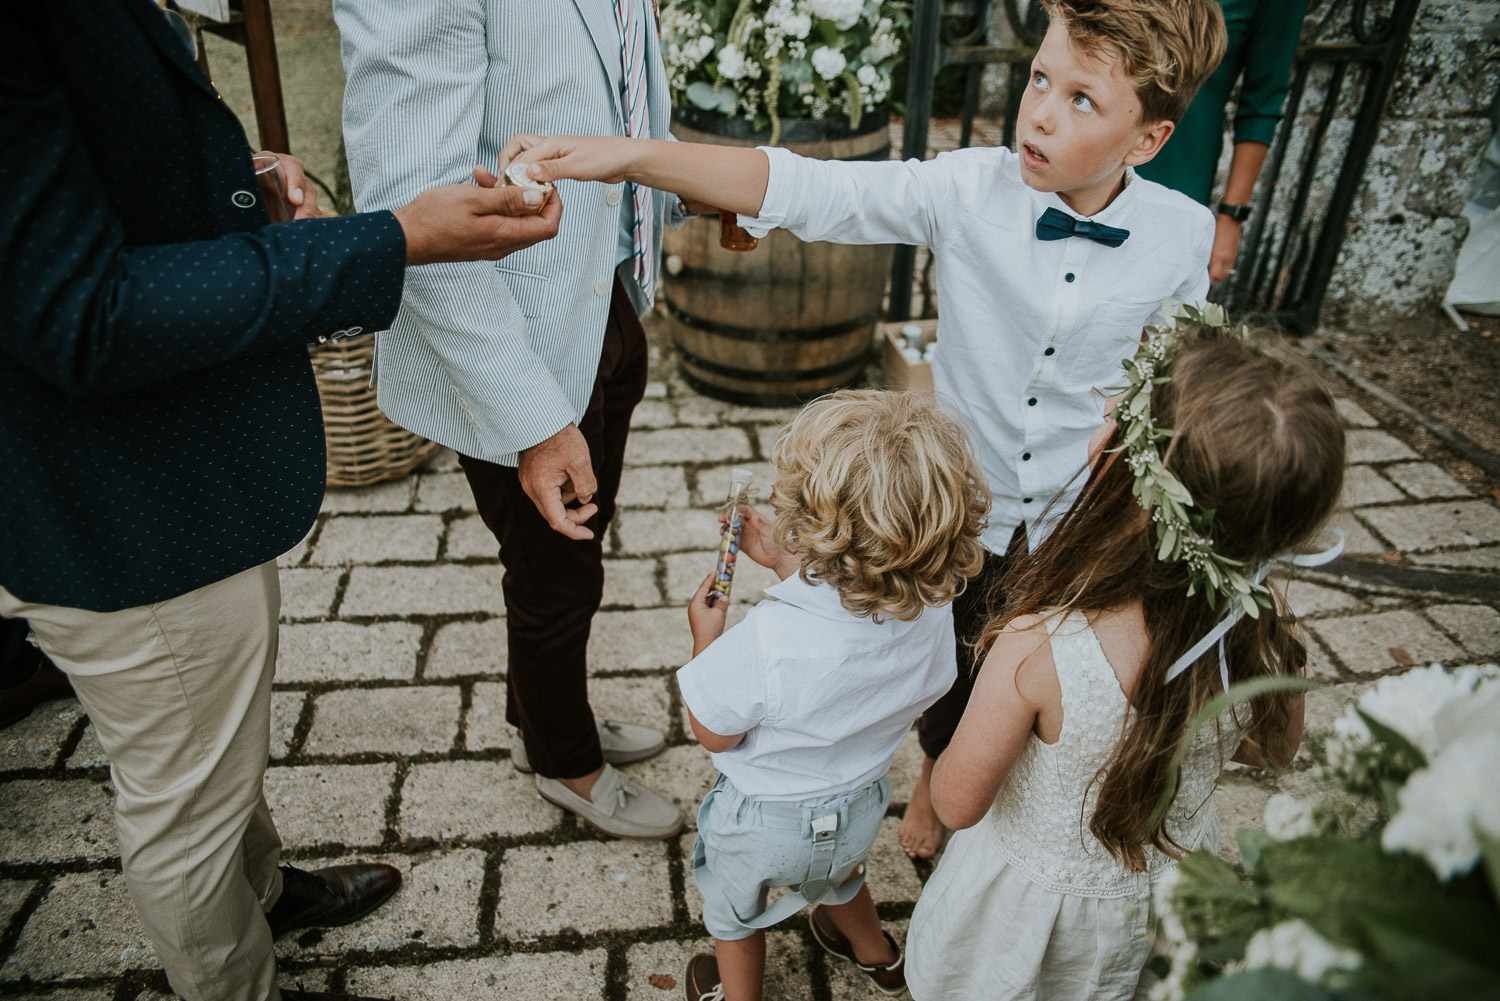 bergerac_wedding_katy_webb_photography_france_UK146